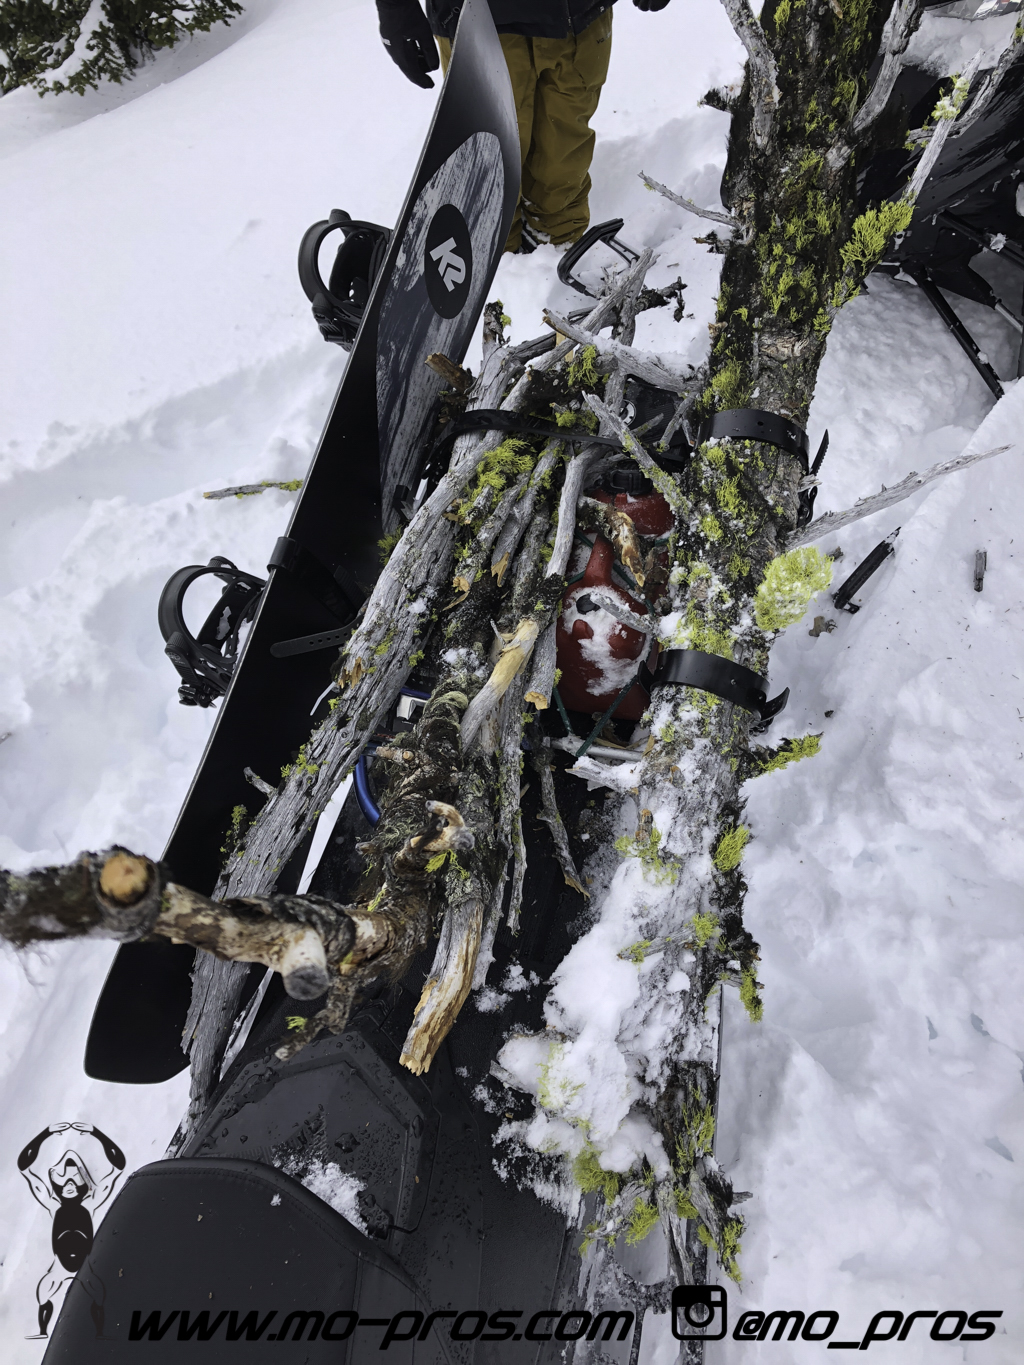 101_Backcountry _Backcountry United_CFR rack_Cheetah Factory Racing_gas Rack_Gear_Gun Rack_LinQ Snowboard Ski_Rack_Ski_Snowbike_snowboard_Snowboard rack_Snowboarding_Snowmobile_snowmobile bag_timbers.jpg